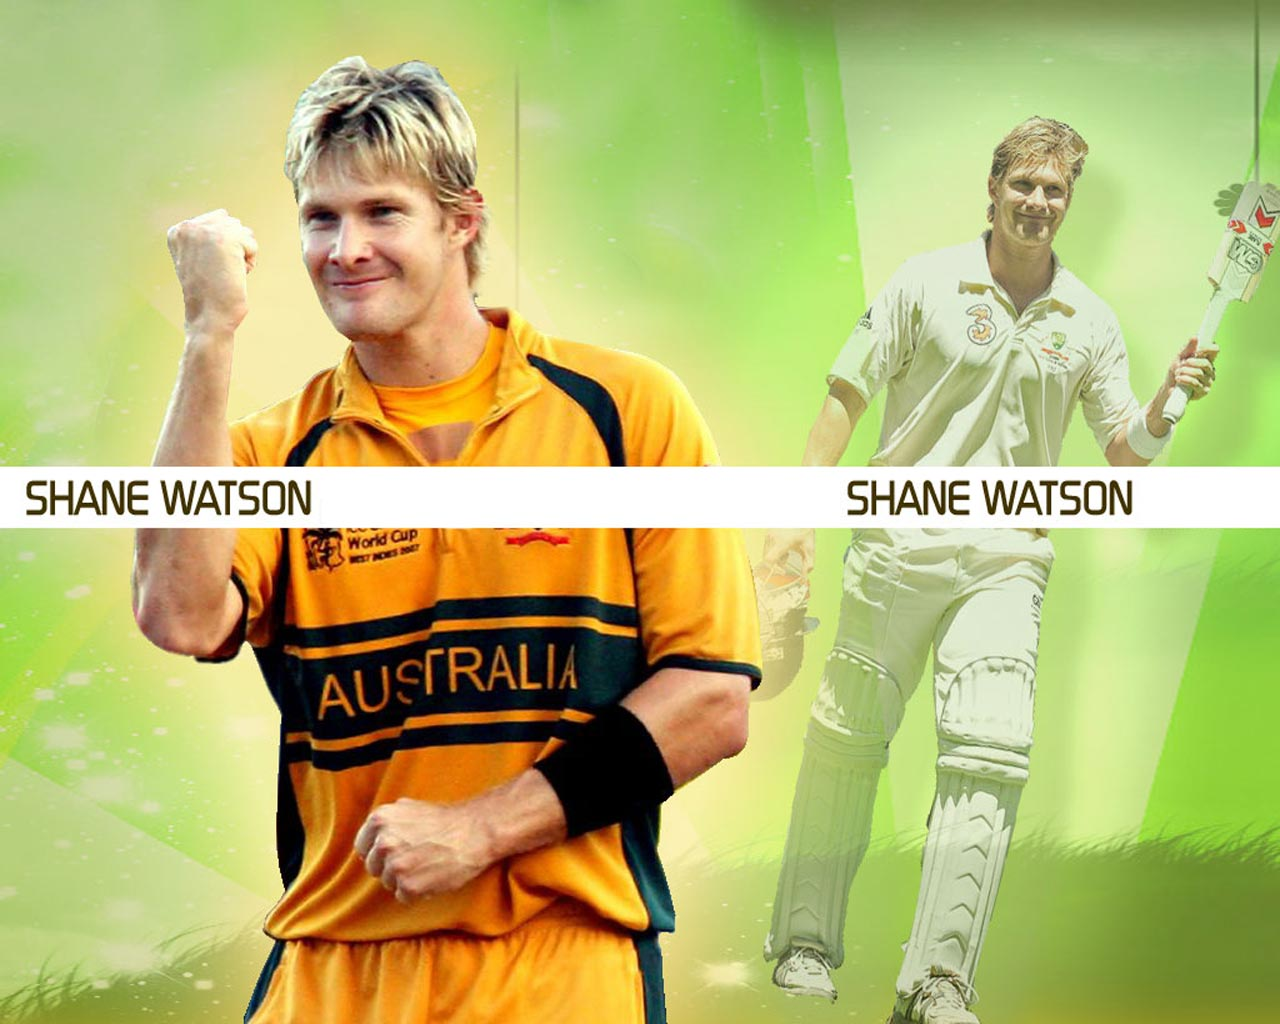 All Sports Players: Shane Watson New HD Wallpapers 2012 Jeff Hardy 2013 Face Paint